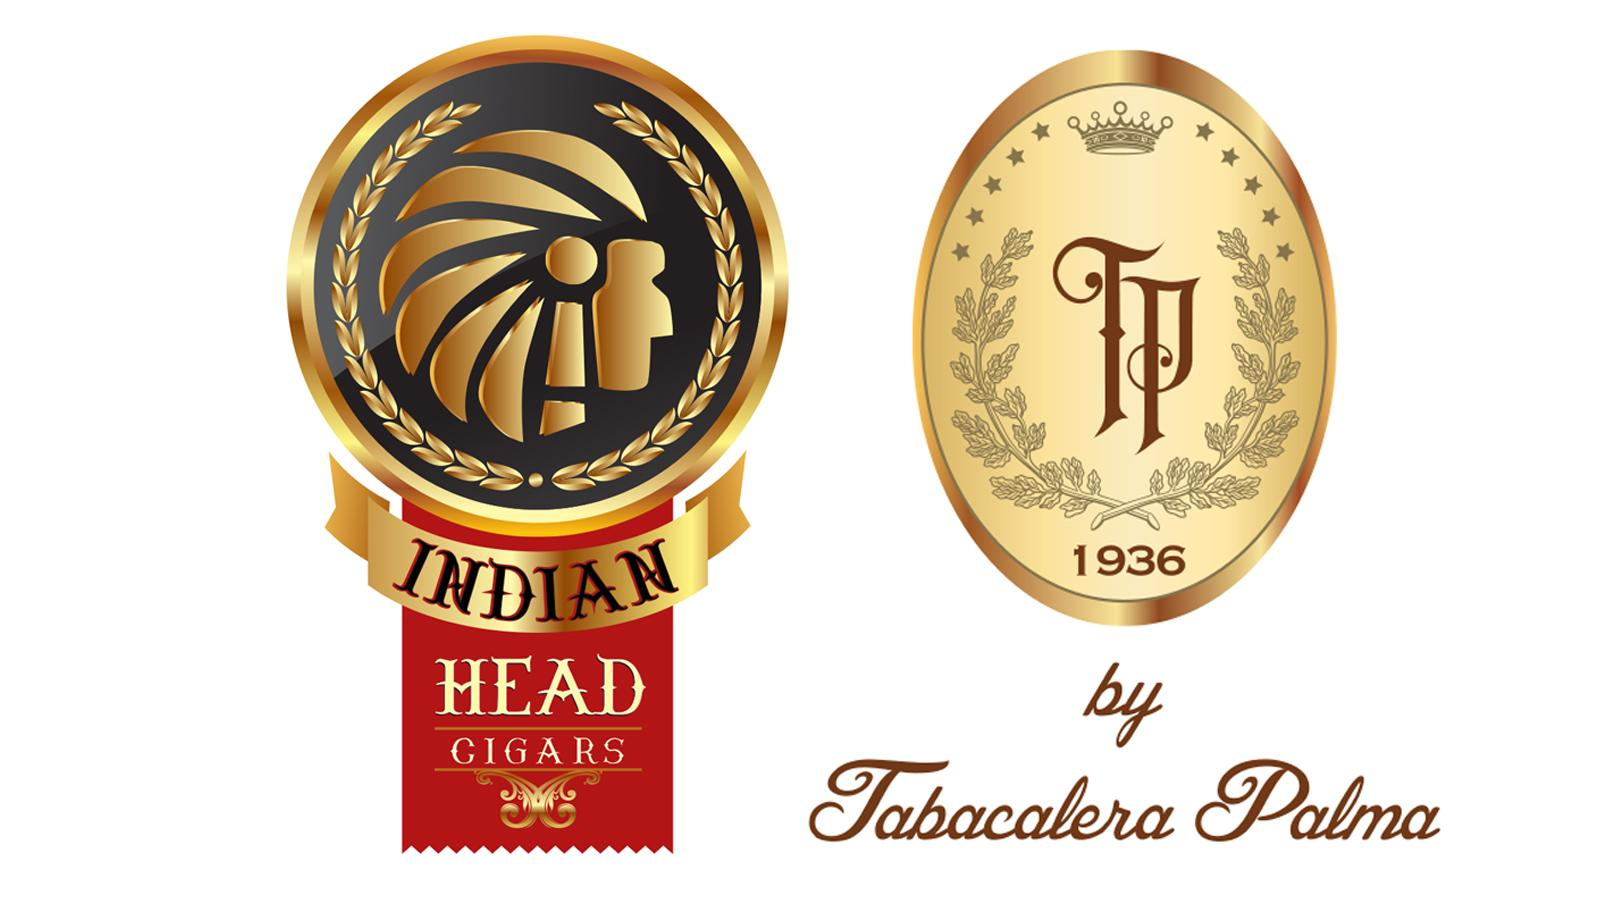 Tabacalera Palma Acquires Indianhead Distributors, Creates New Brand